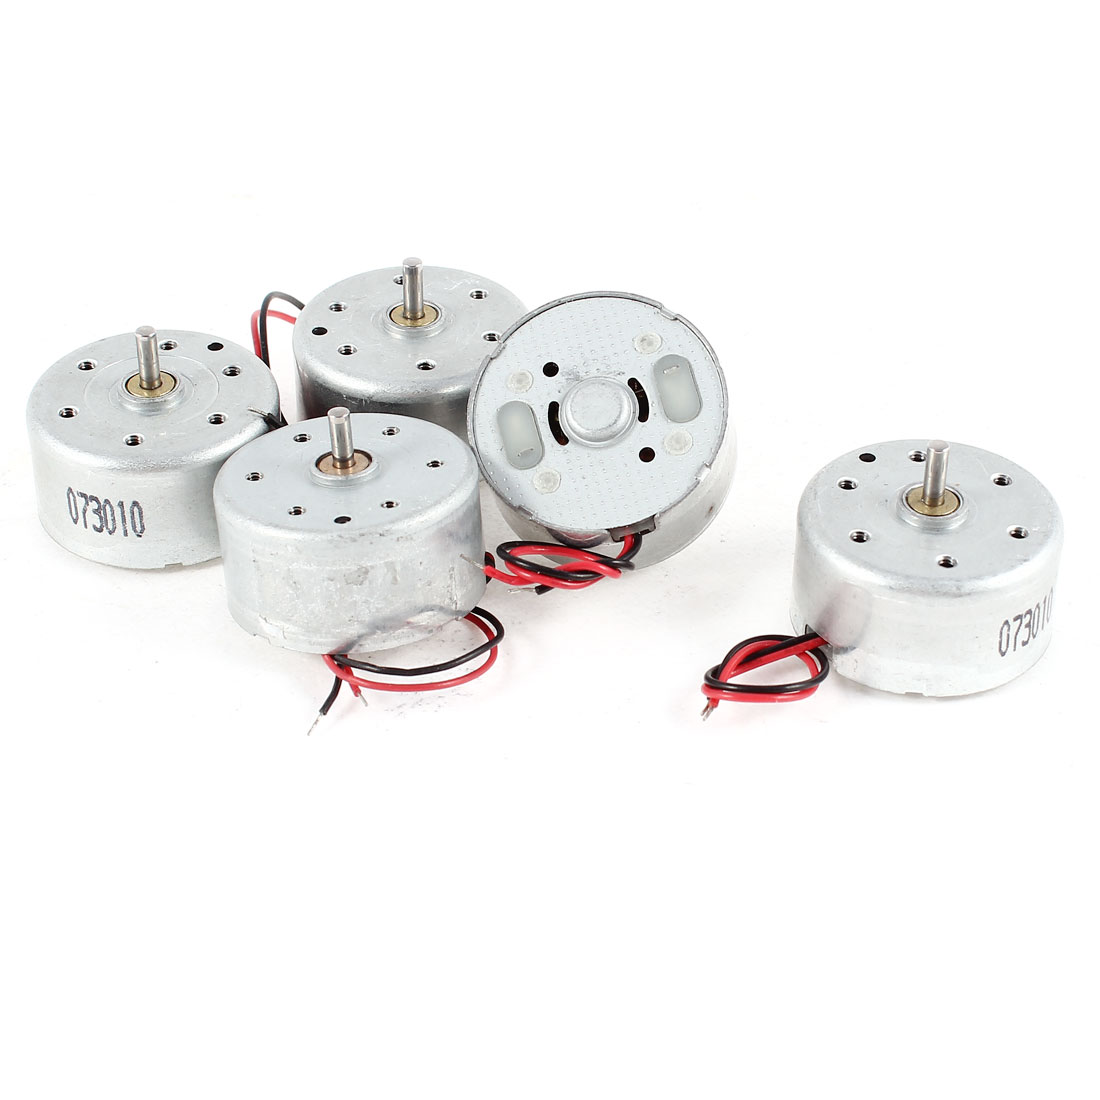 5 Pcs DC 1.5-3V 4500RPM Electric Mini Motor 12x25mm for CD DVD Player